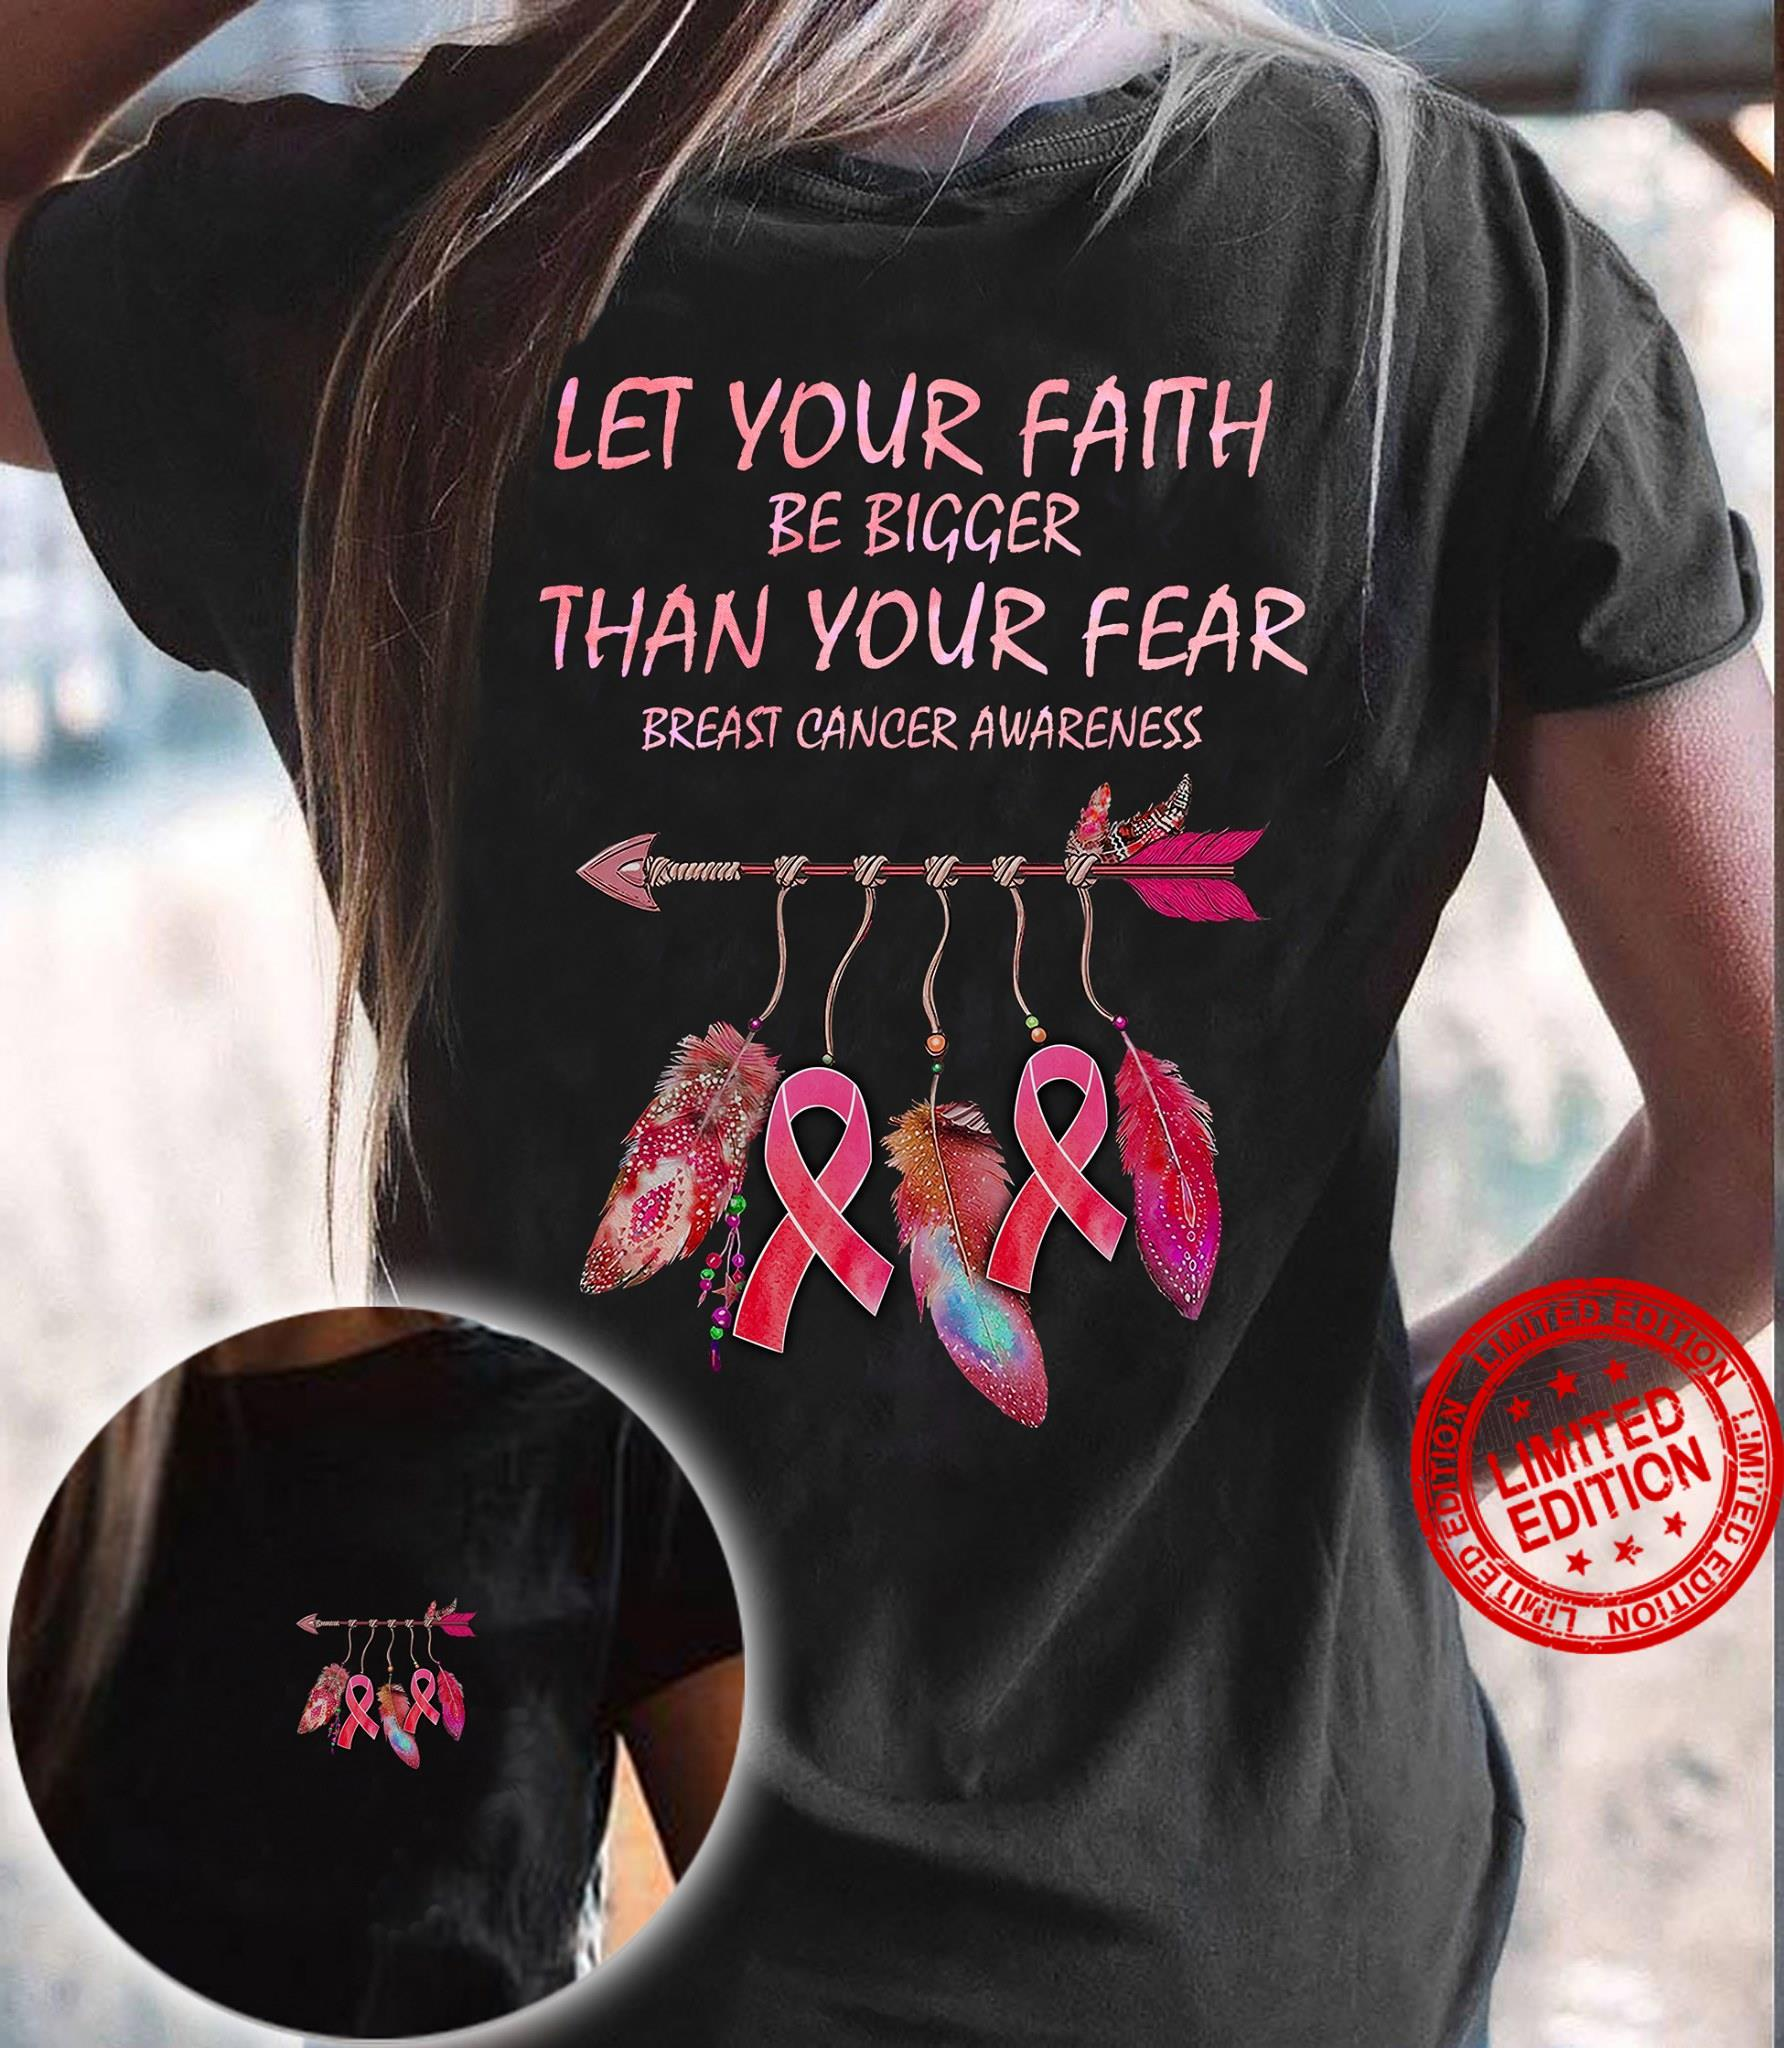 Let Your Faith Be Bigger Than Your Fear Breast Cancer Awareness Shirt